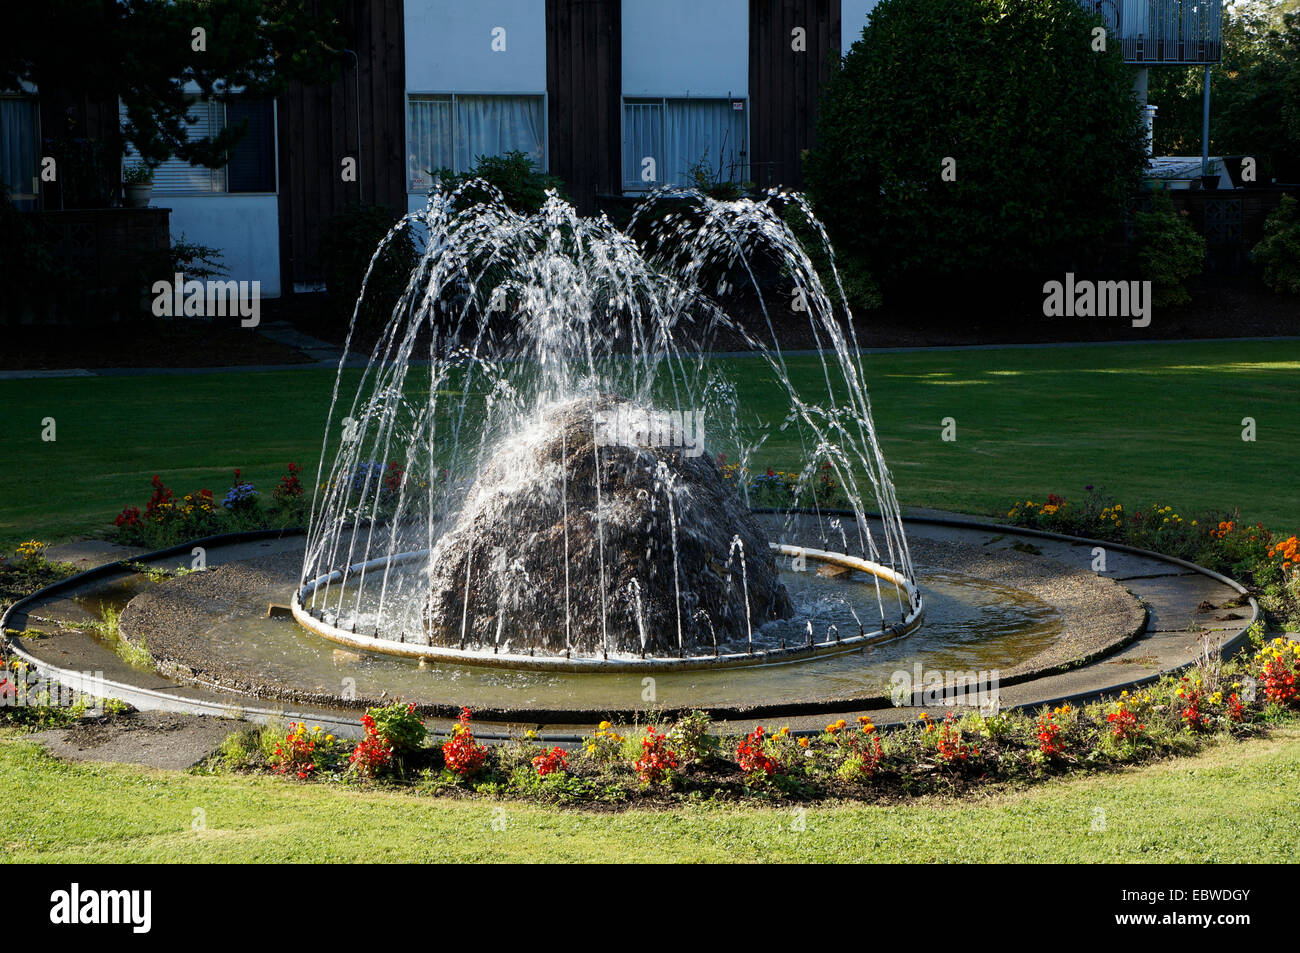 Water fountains canada - Garden Fountain With Water Spilling Onto A Boulder Vancouver Bc Canada